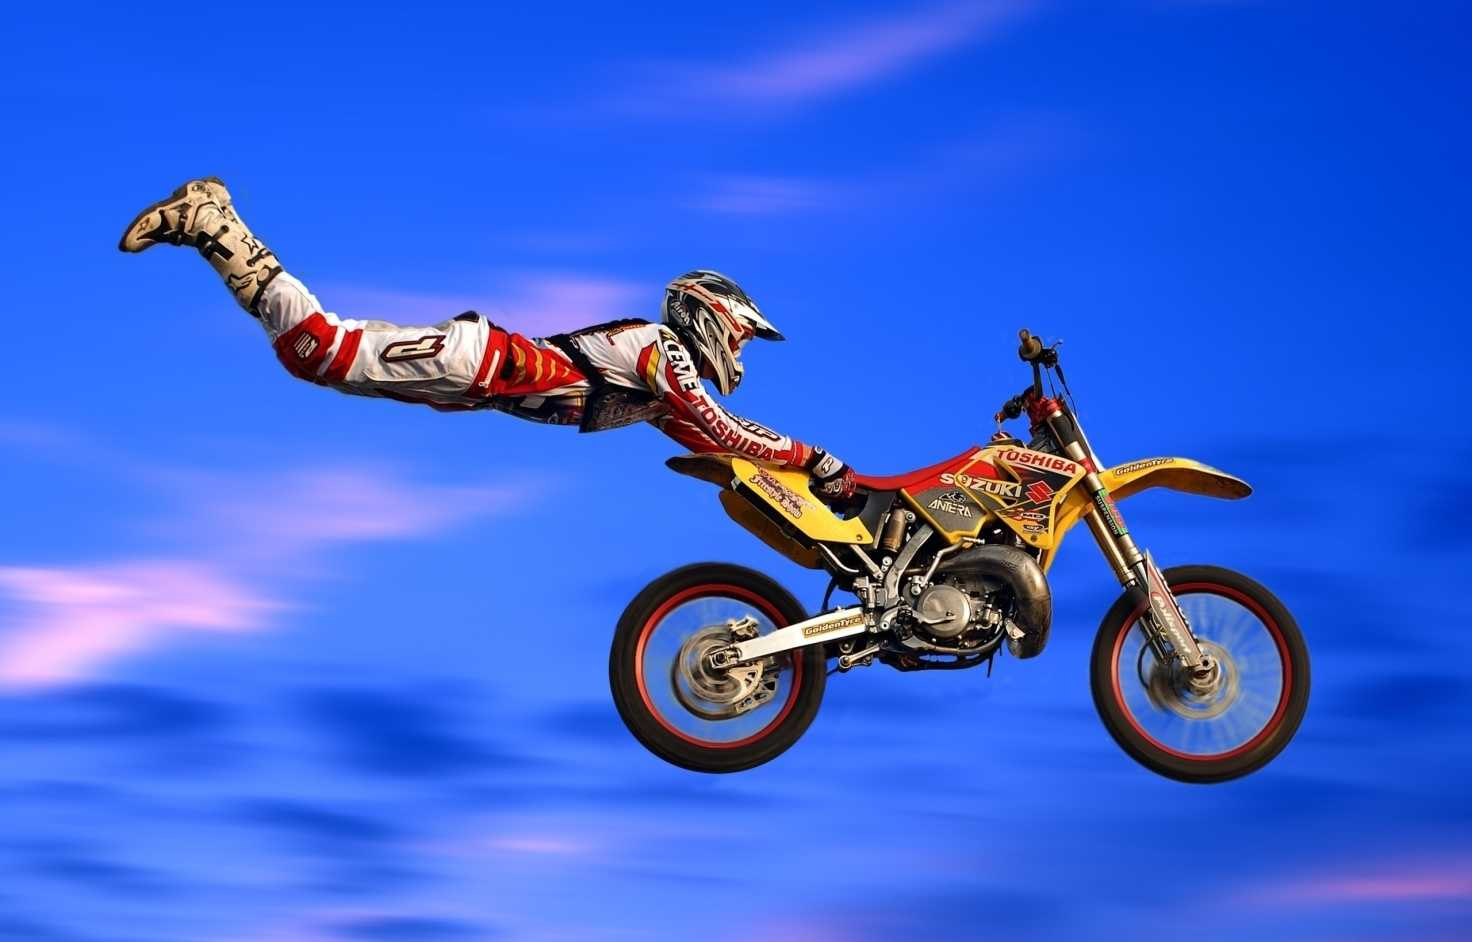 wheels guru freestyle motocross racing summary history facts